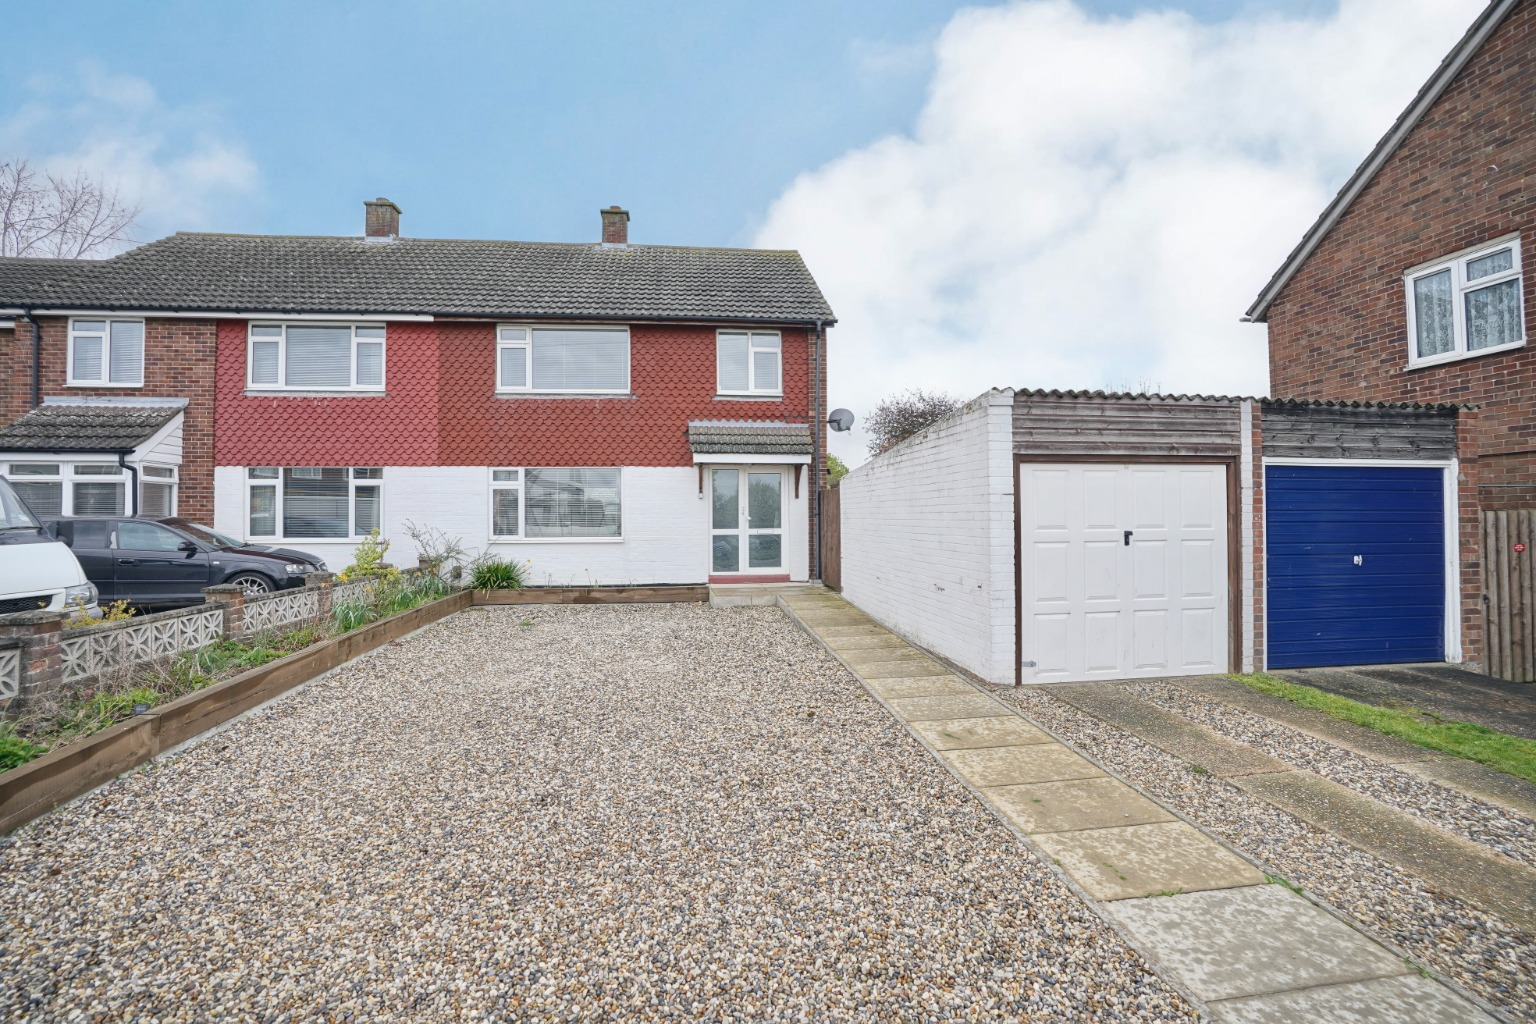 3 bed semi-detached house for sale in Longsands Road, St. Neots - Property Image 1